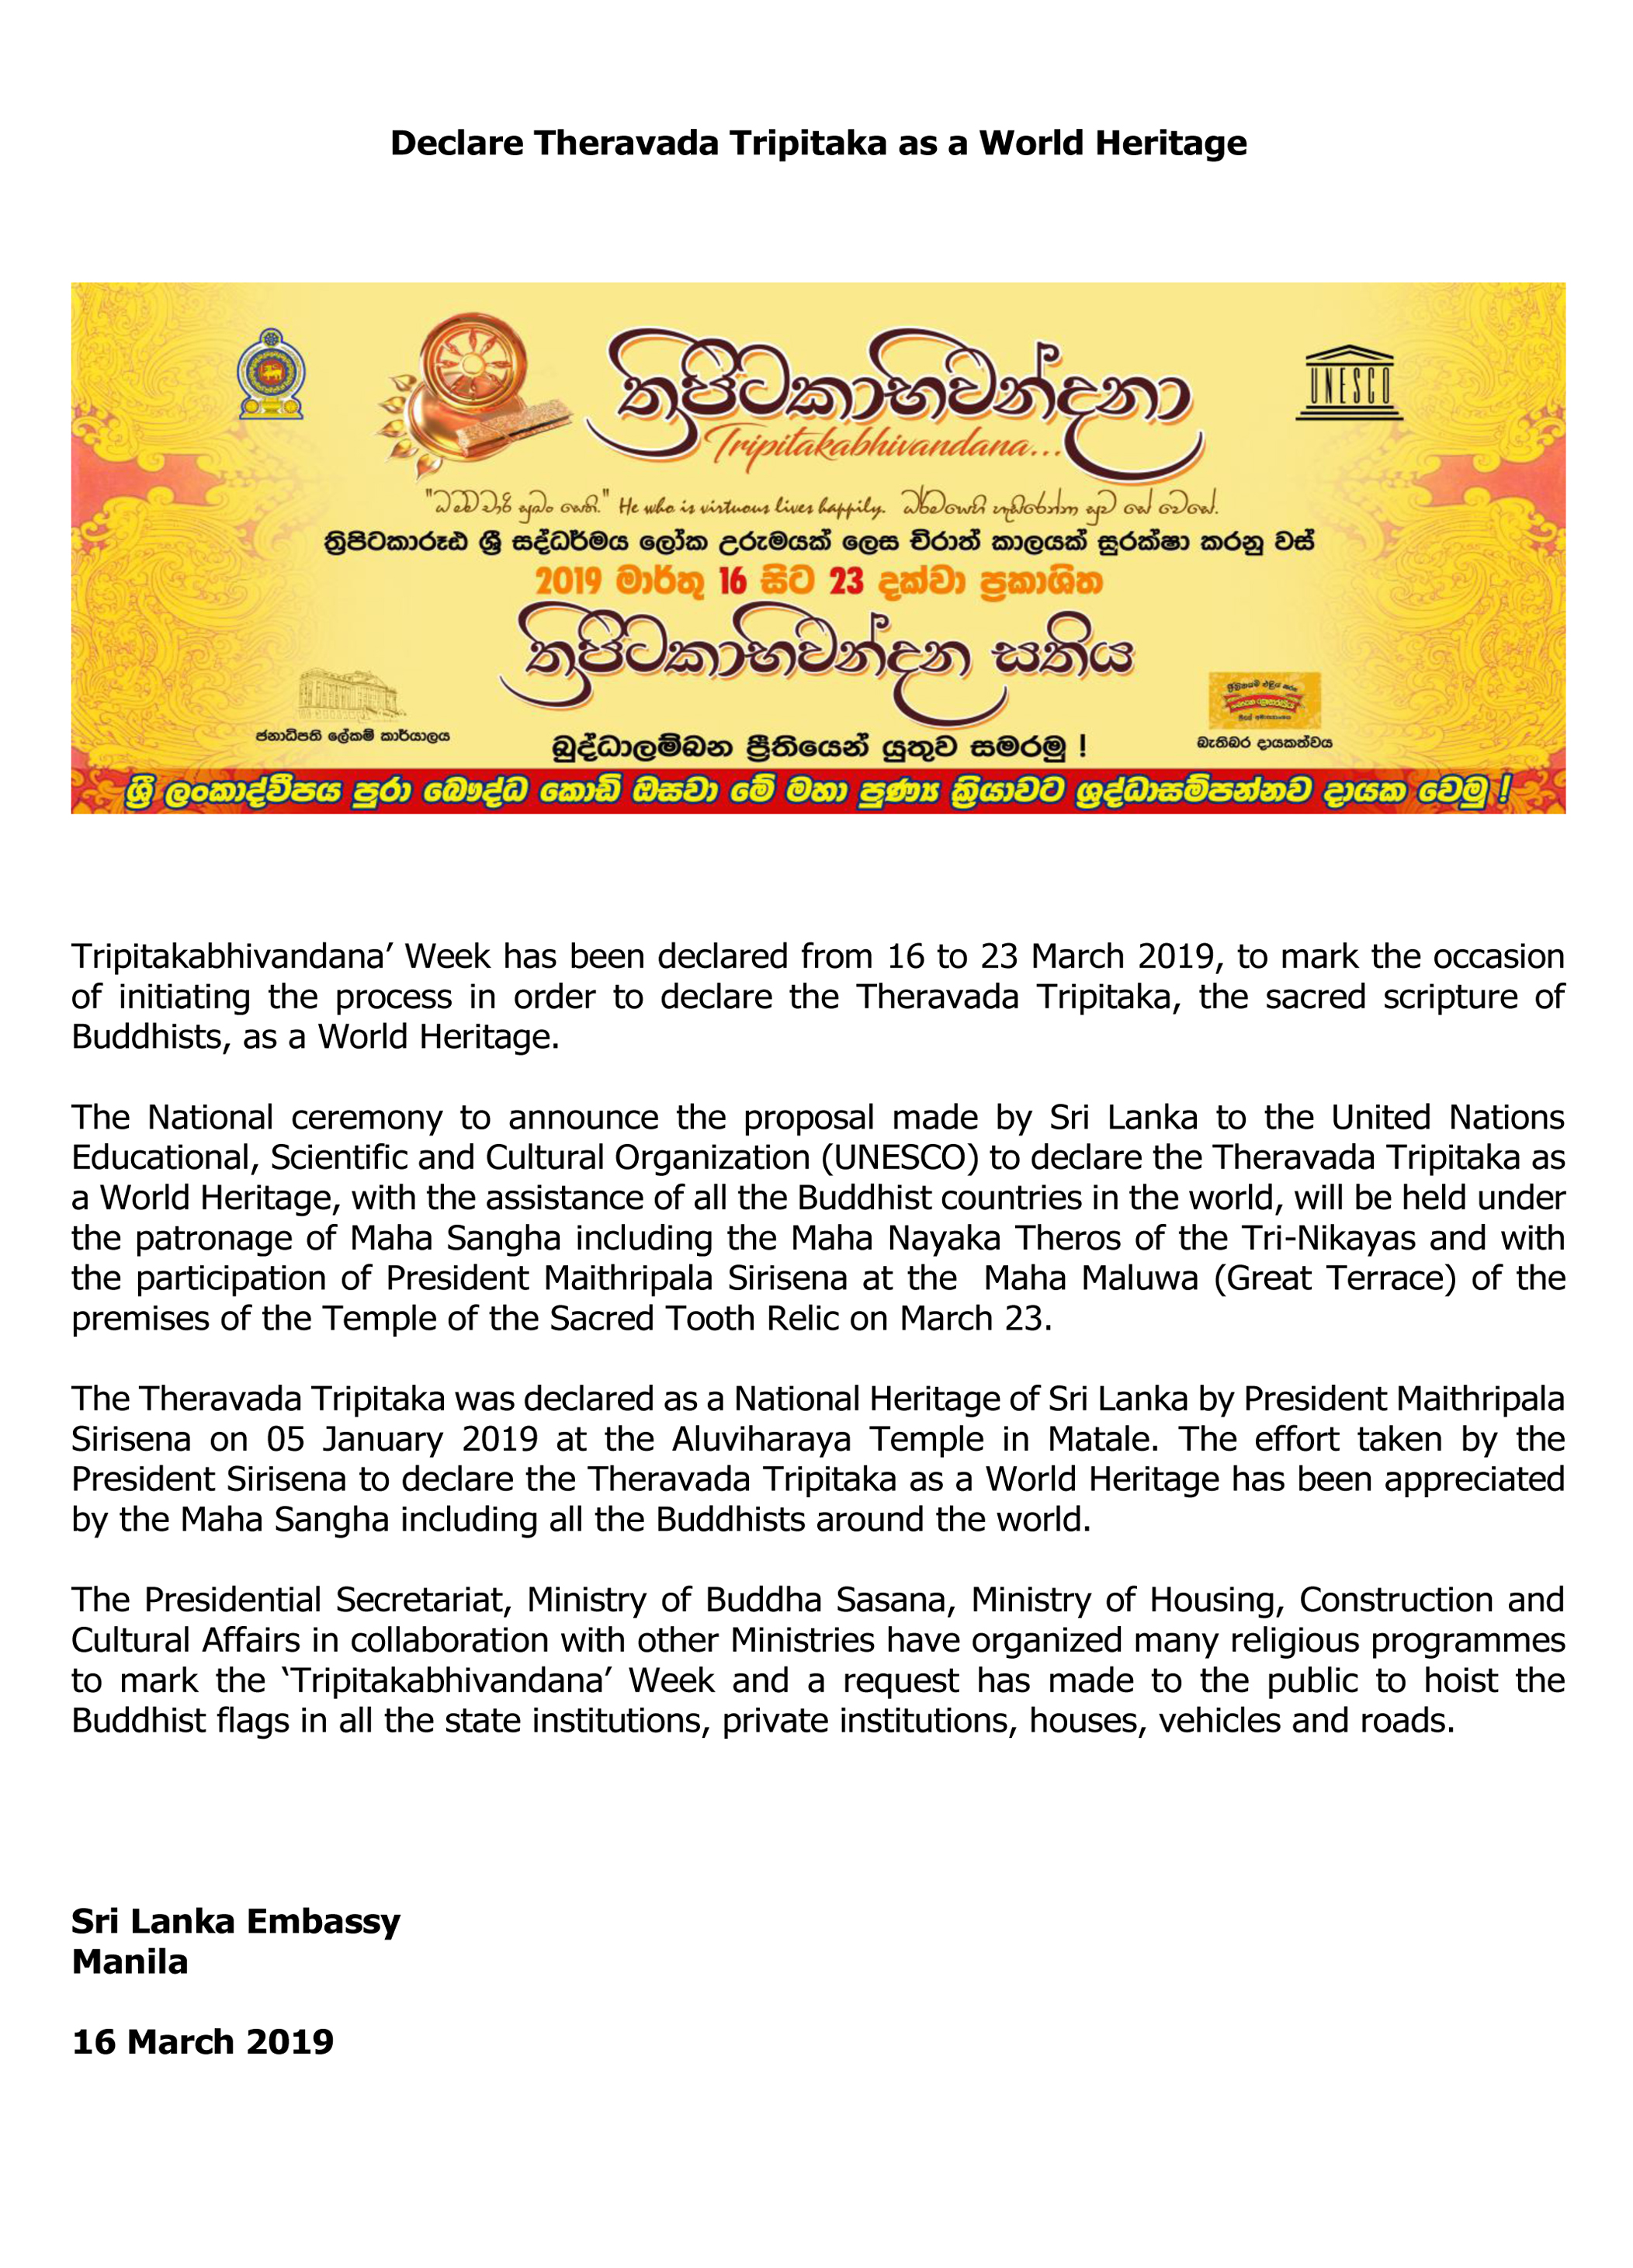 Tripitakabhivandana - Press Note-F